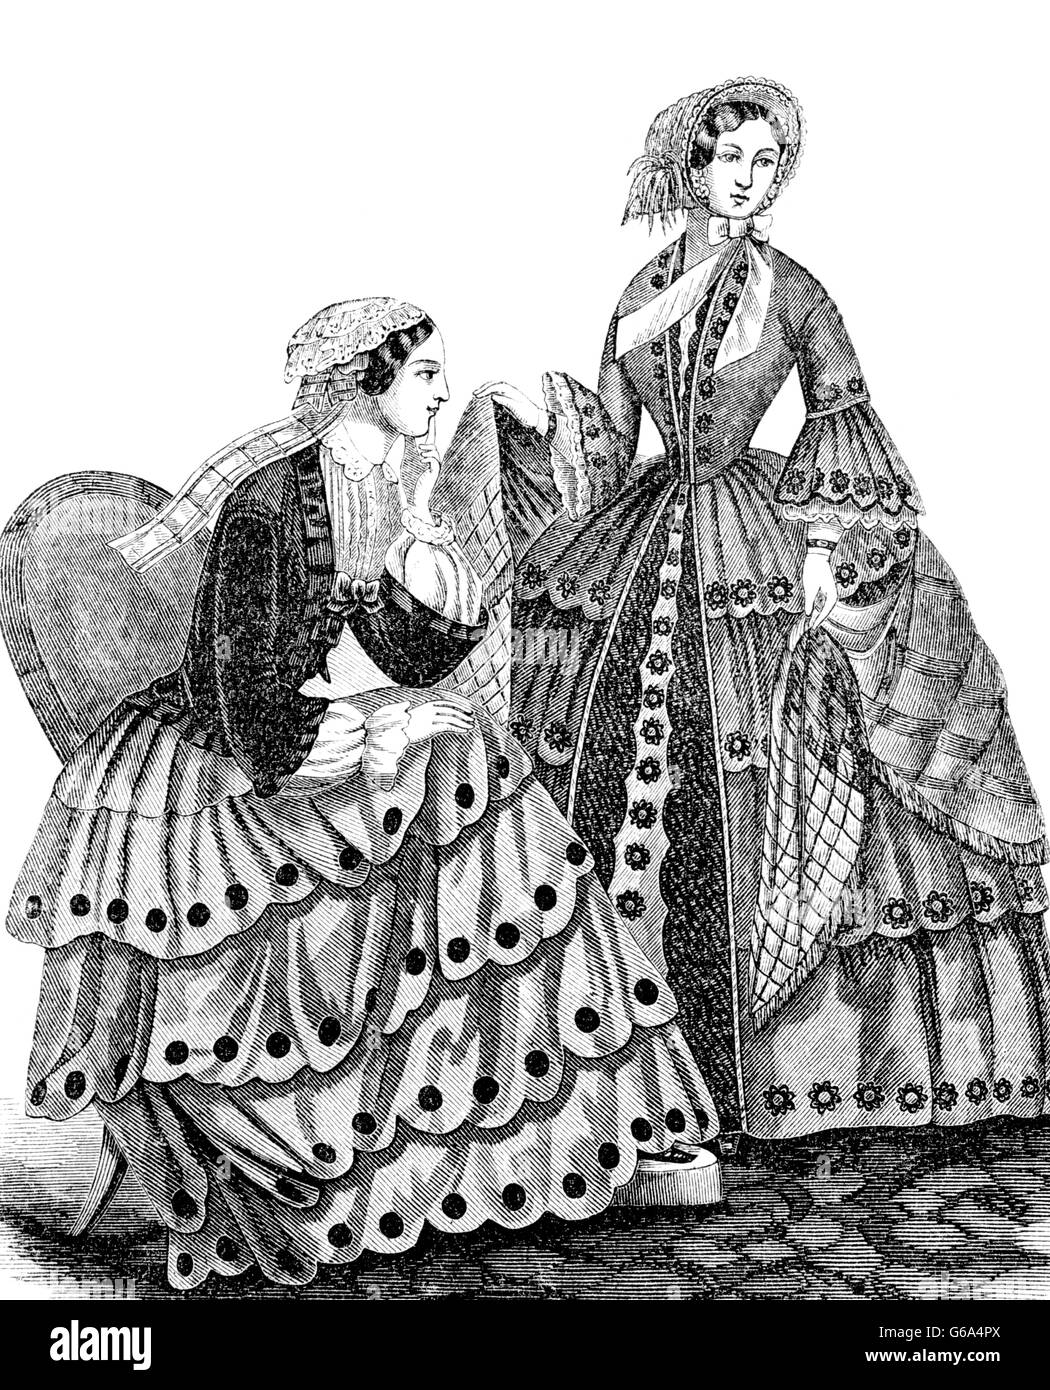 1850s ENGRAVING OF WOMEN'S FASHIONS FROM HARPER'S MAGAZINE CIRCA 1853 - Stock Image